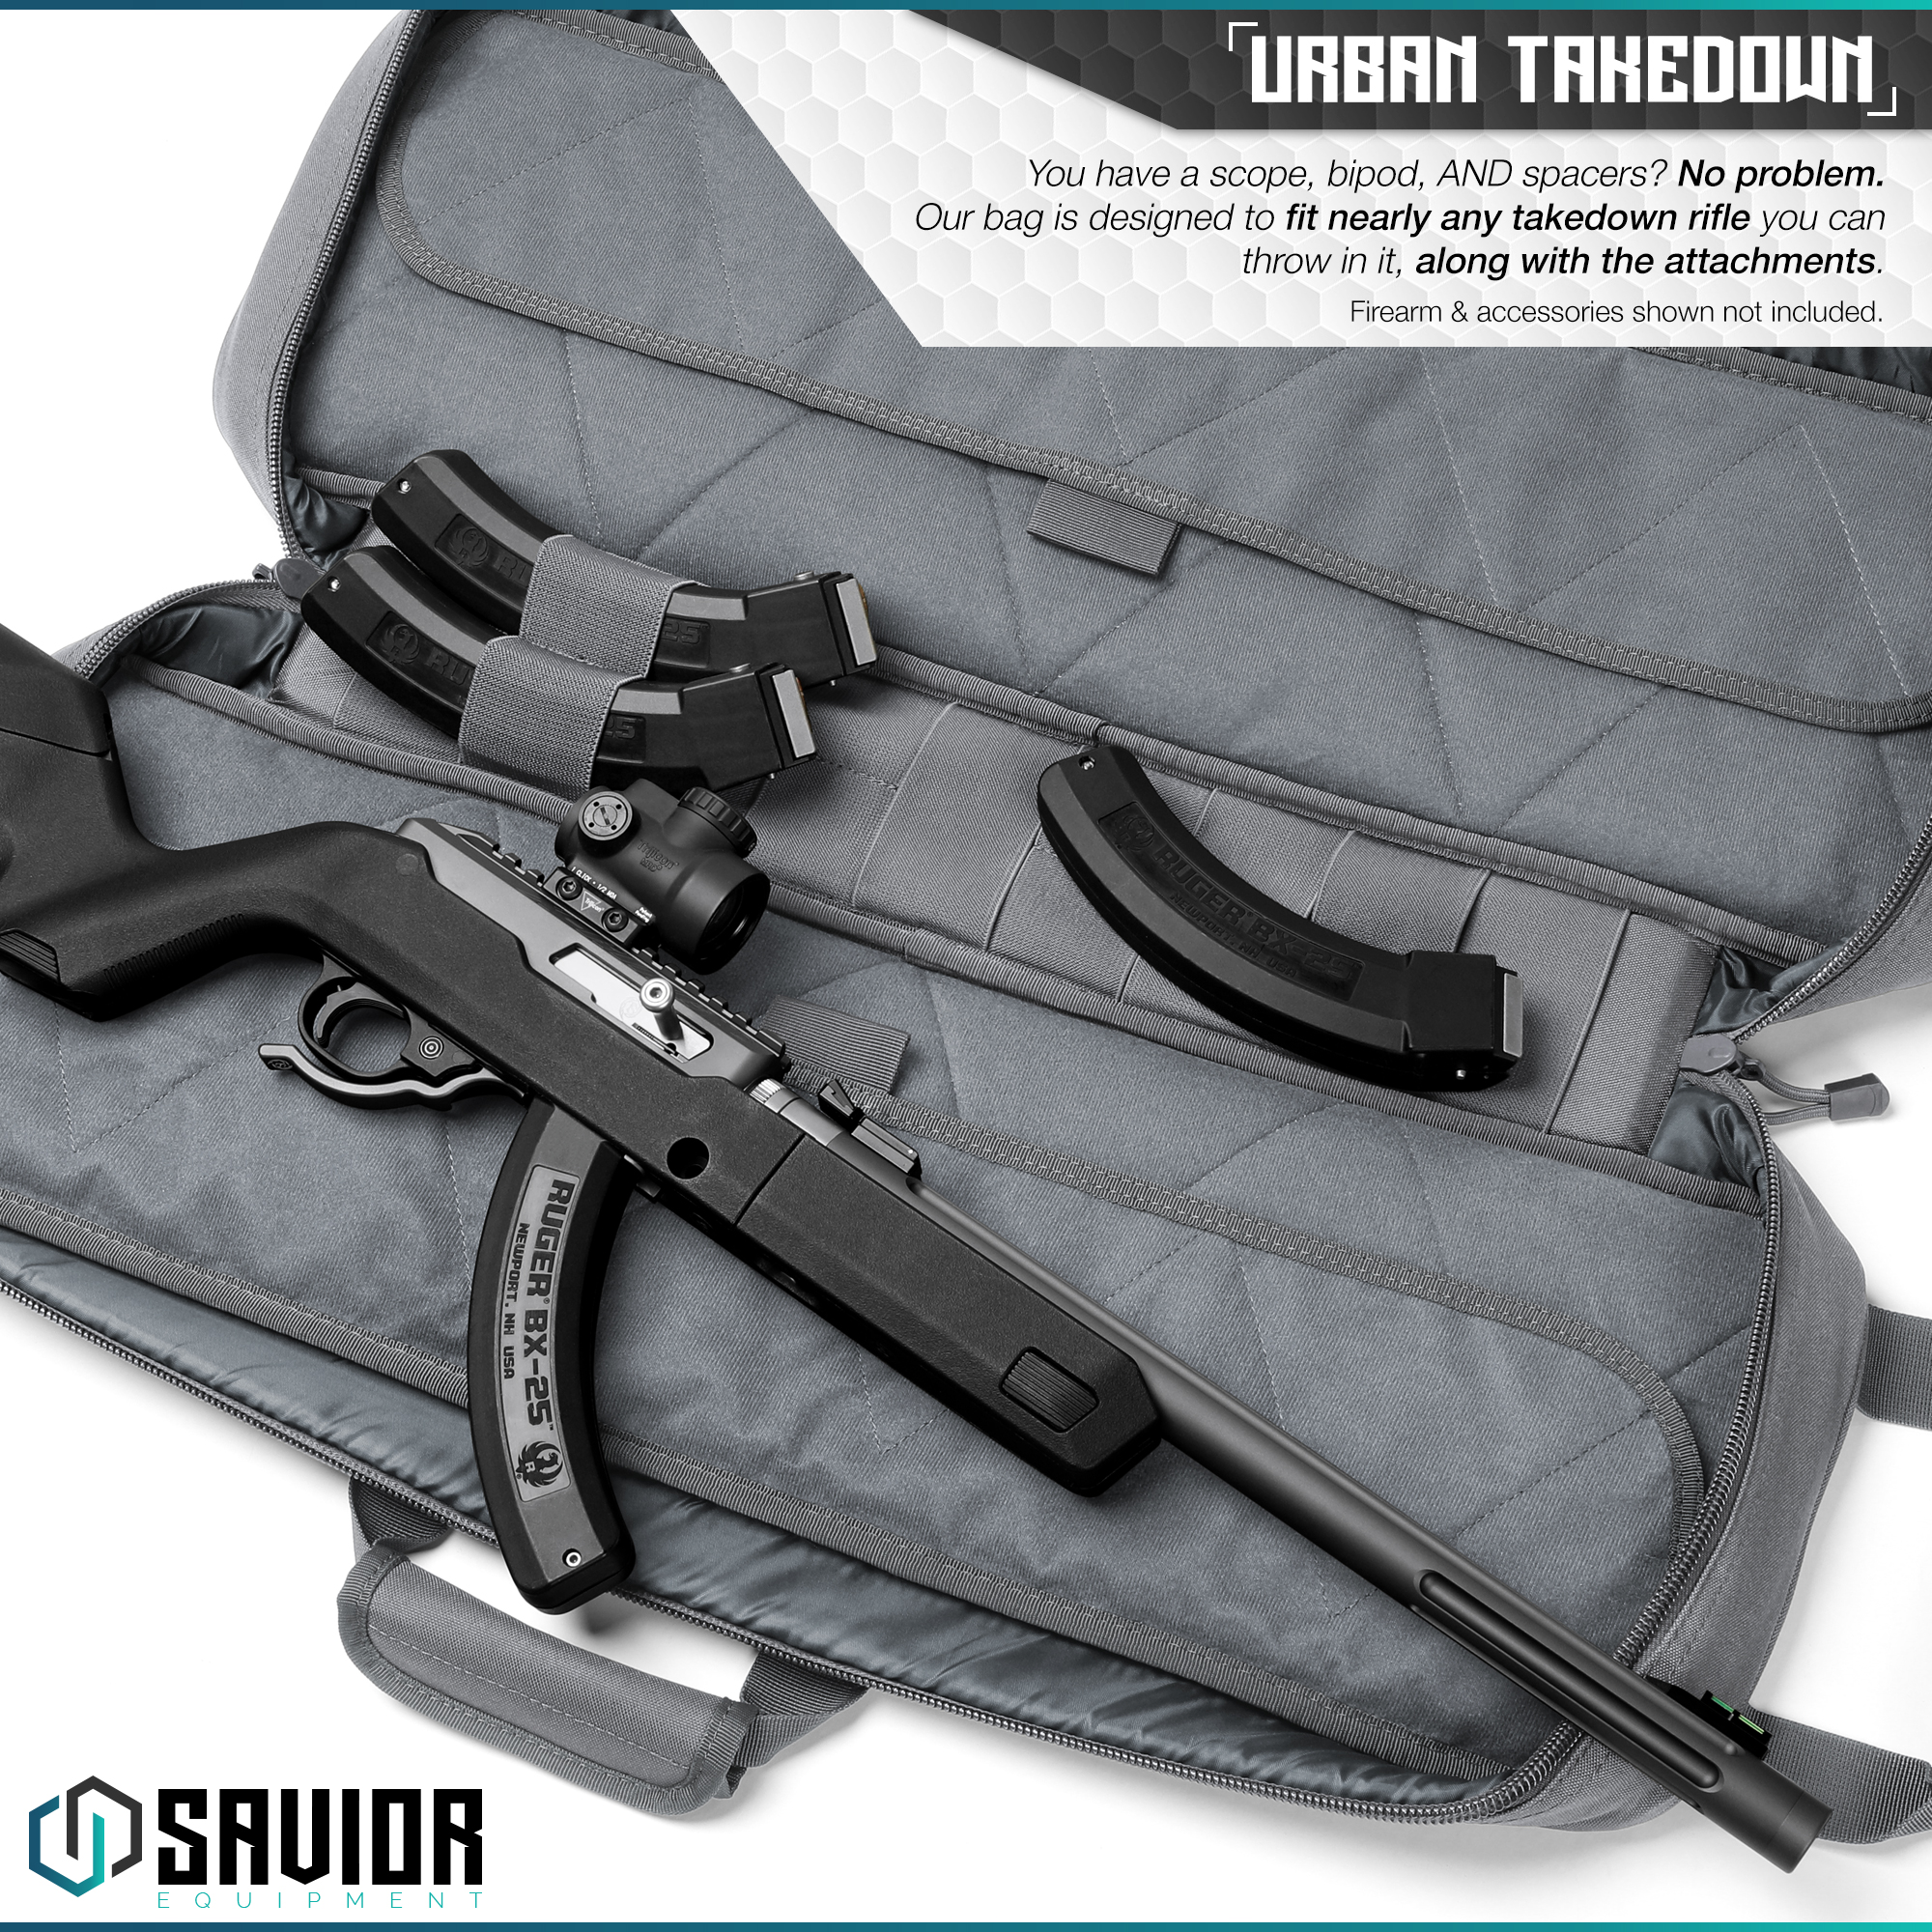 Savior-Tactical-Urban-Takedown-Bag-Carbine-Rifle-Padded-Shotgun-Firearm-Backpack thumbnail 21